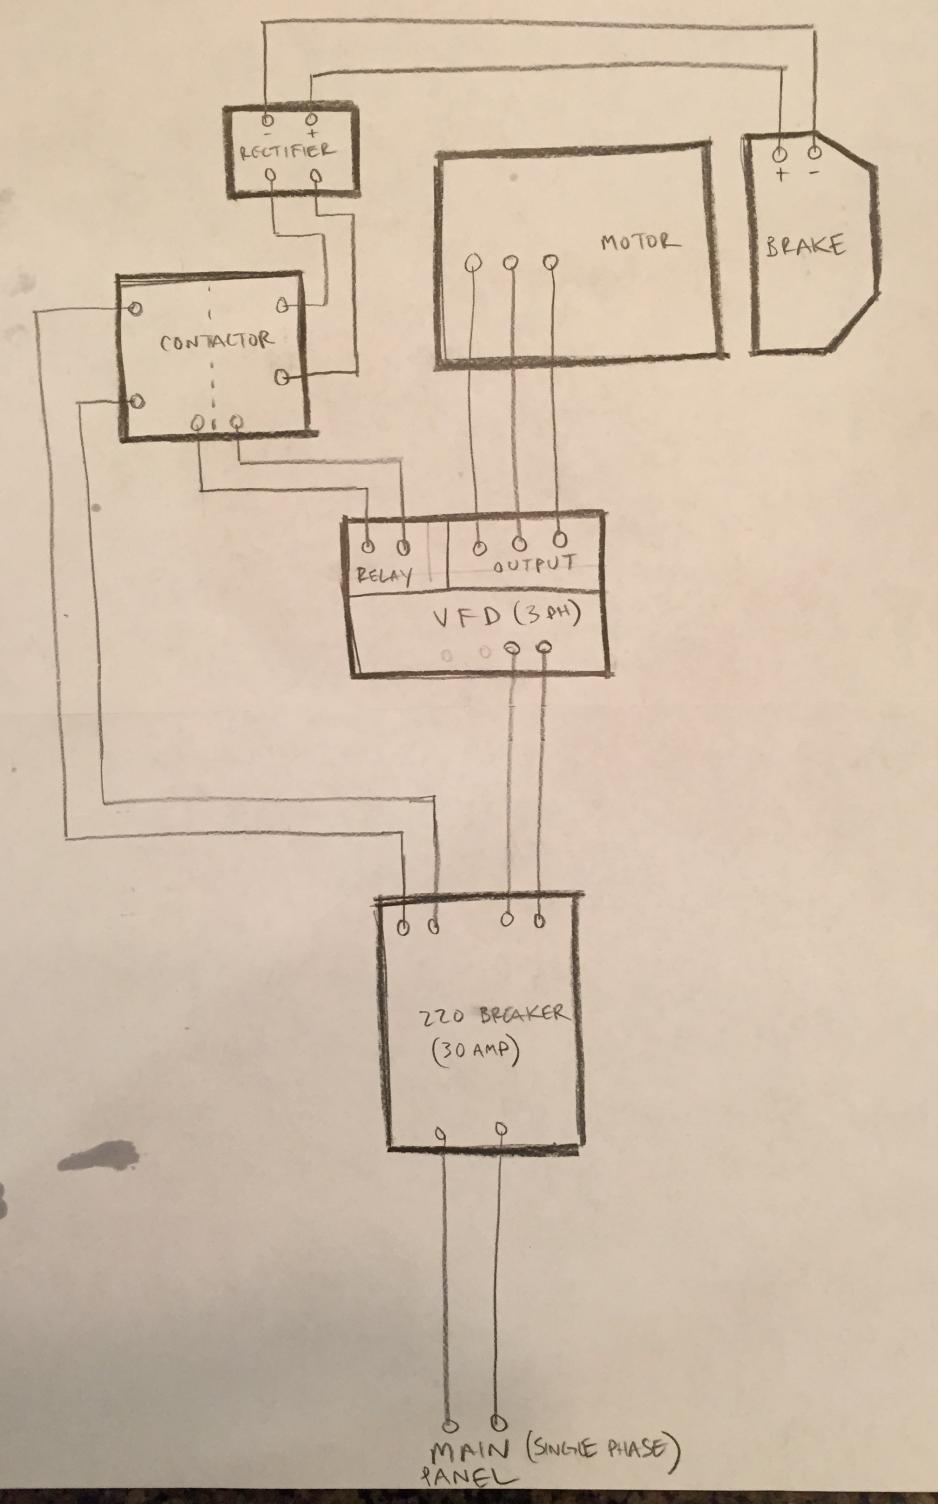 help with vfd relay circuit wiring Motor Contactor Wiring Diagram